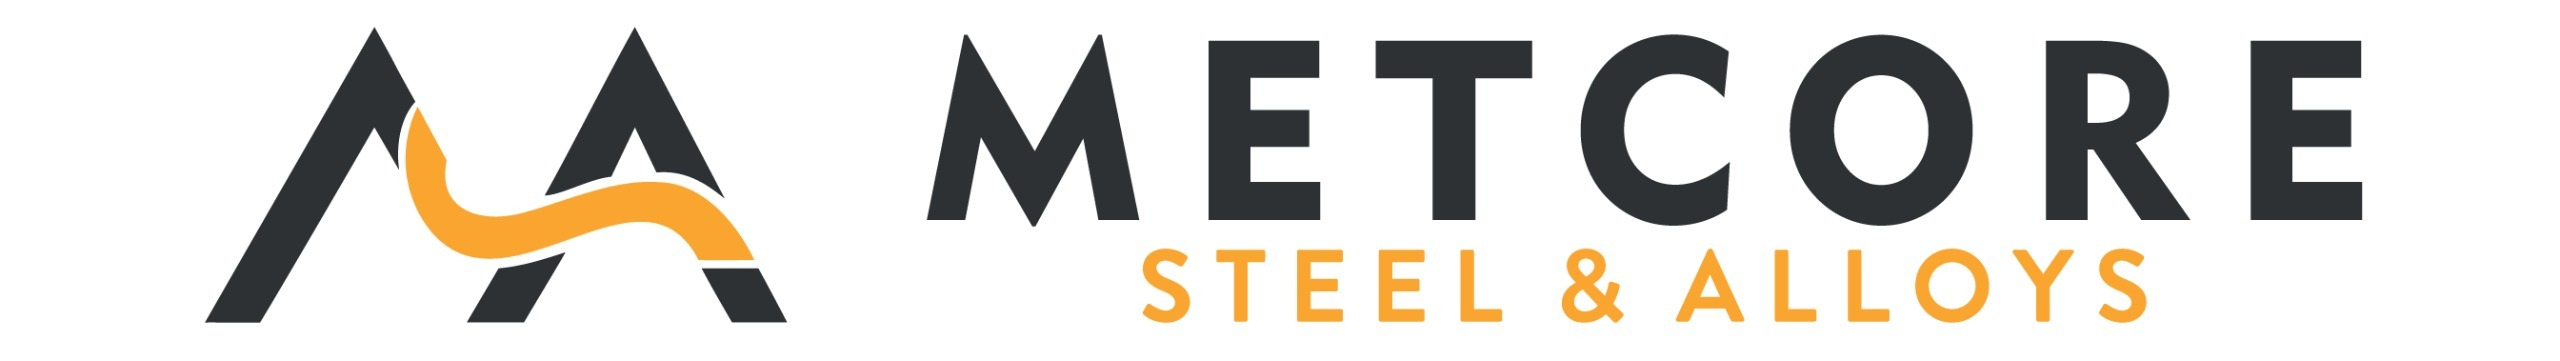 Metcore Steel & Alloys (@metcoresteel) Cover Image